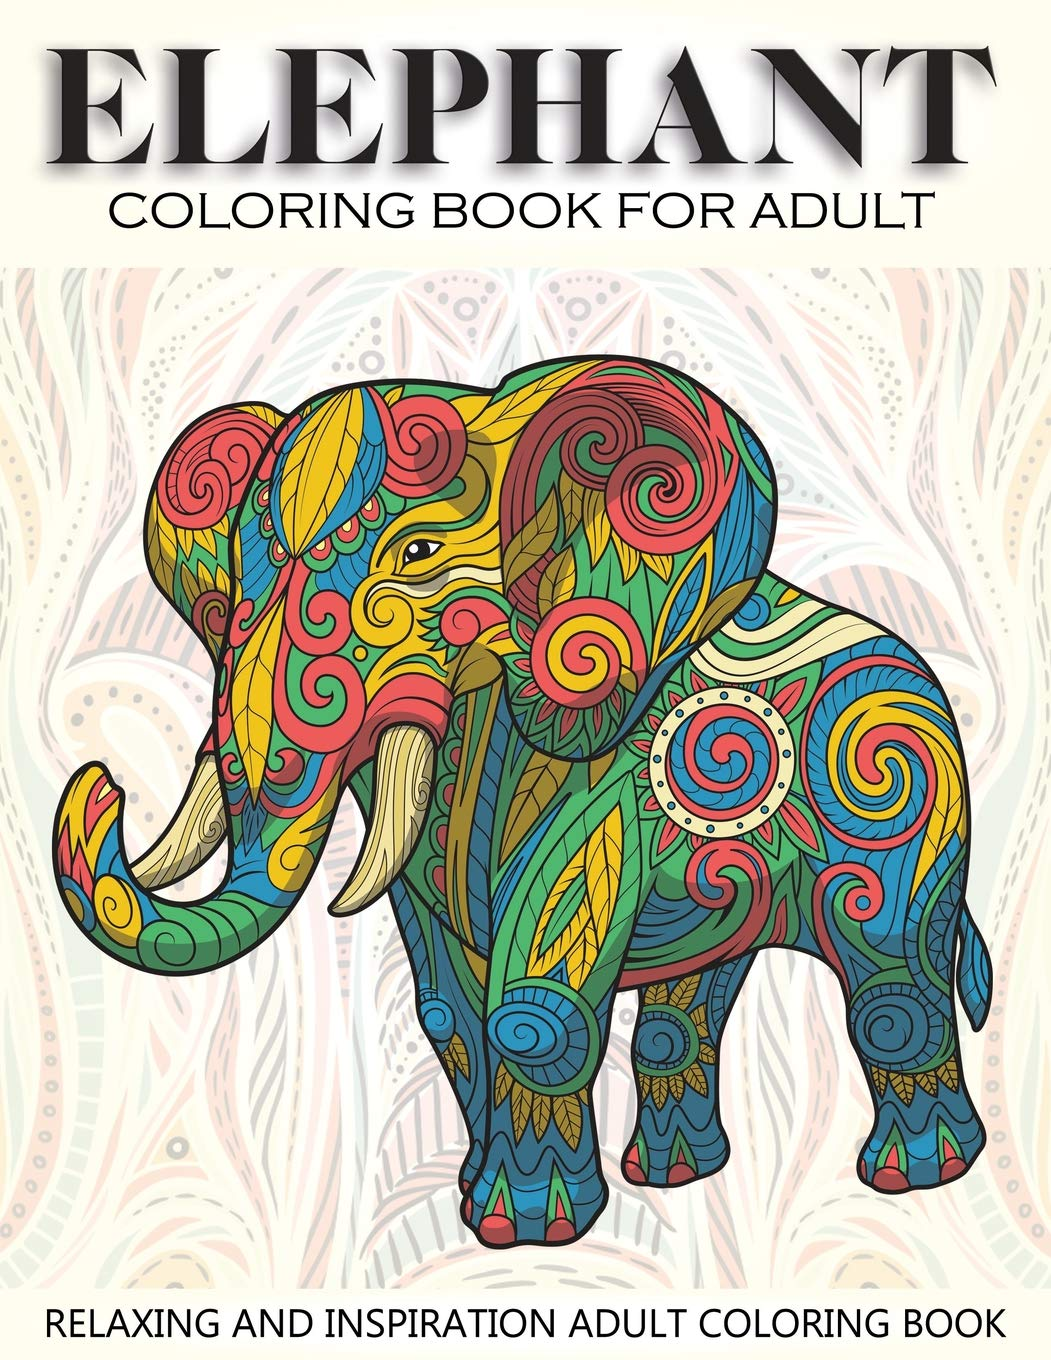 - Amazon.com: Elephant Coloring Book For Adult: 41 Elephants Designs